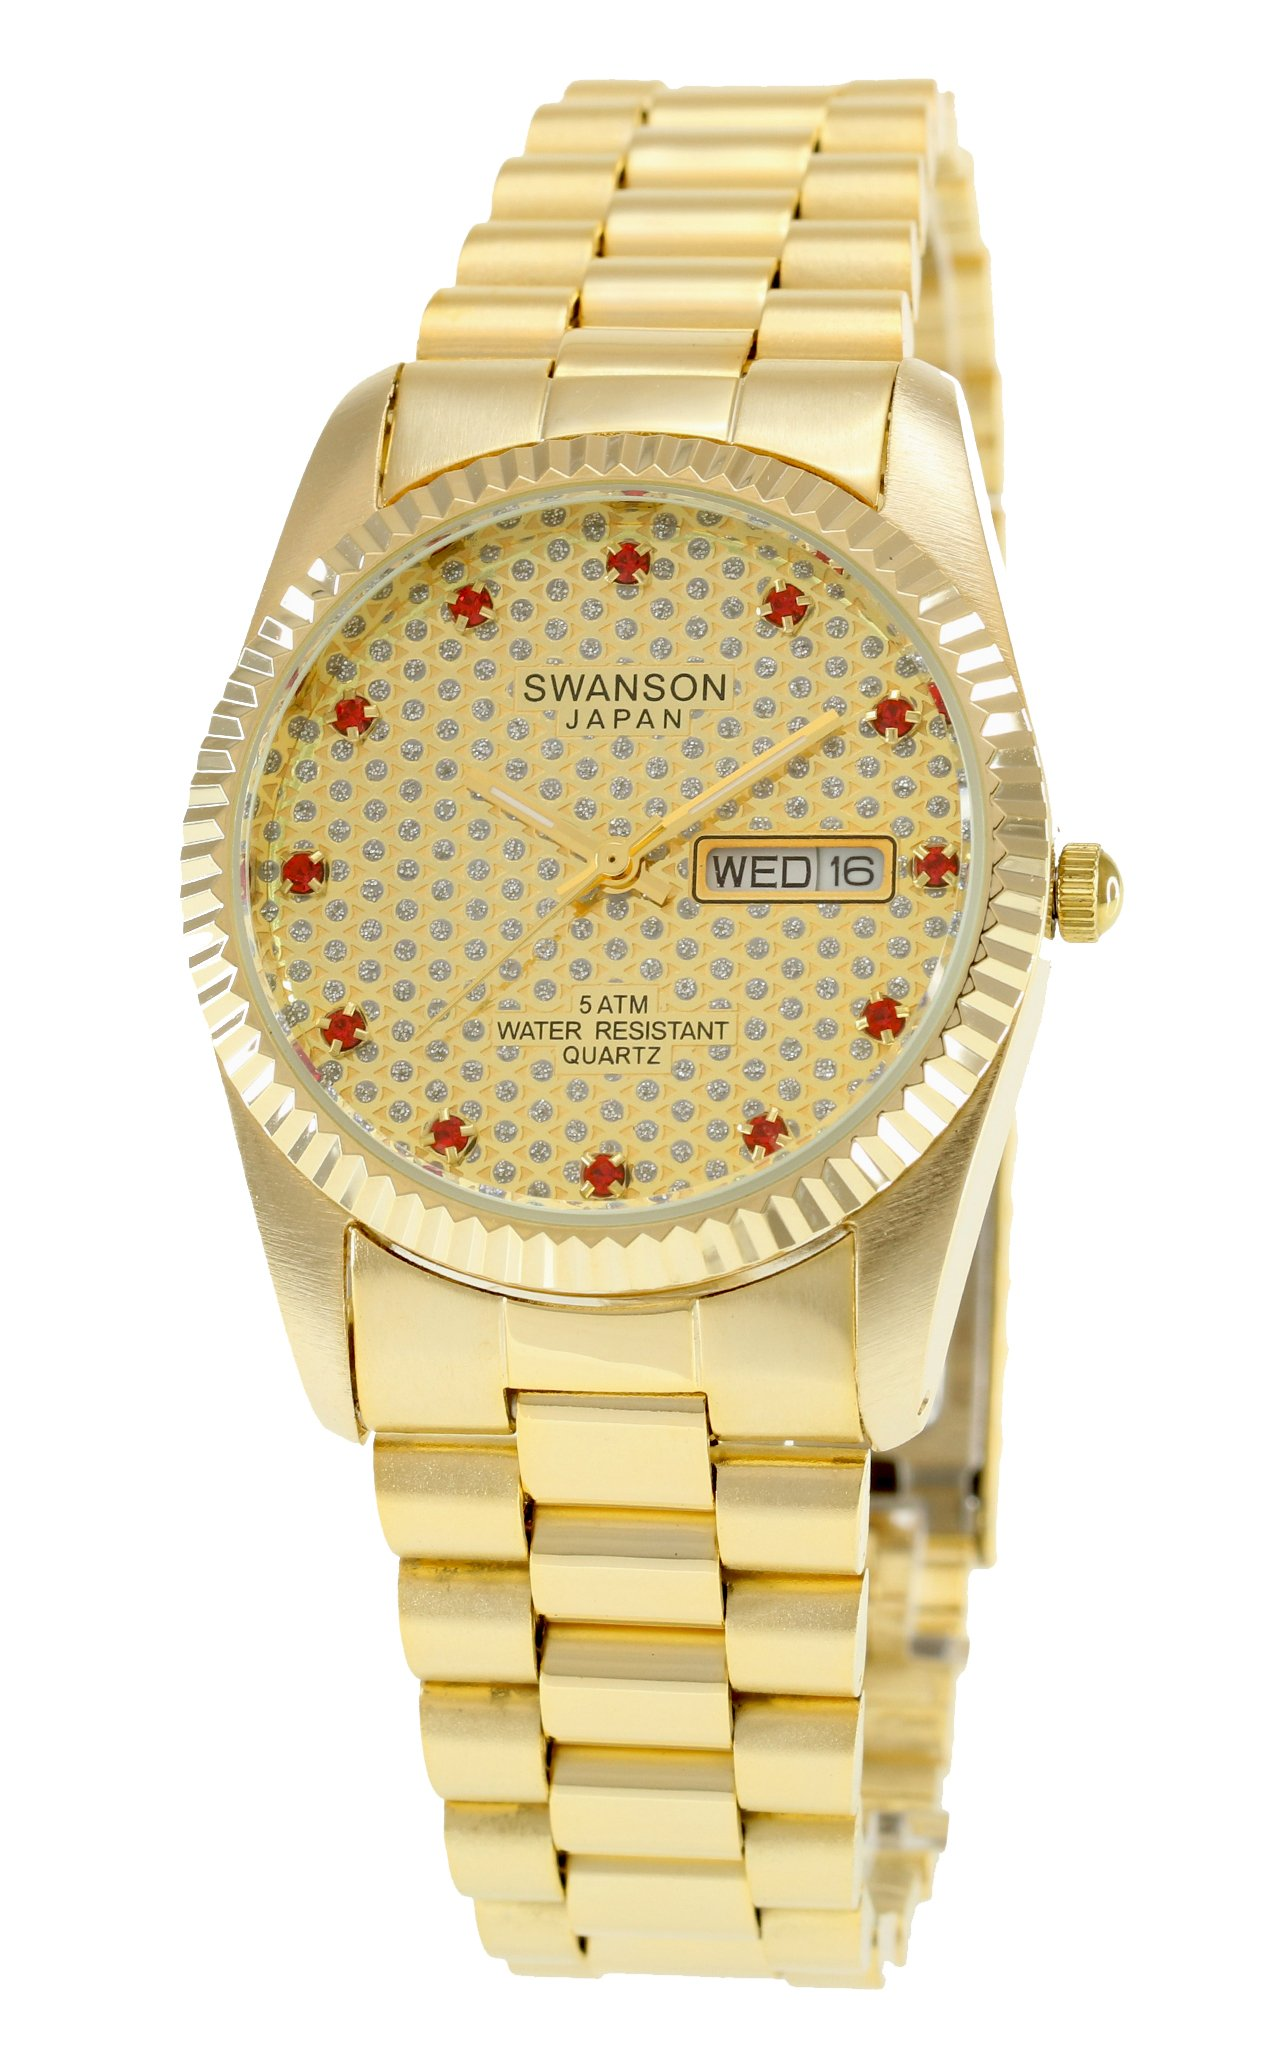 Swanson Men's Gold Day-Date Gold Pave Stone Dial Watch with Travel Case